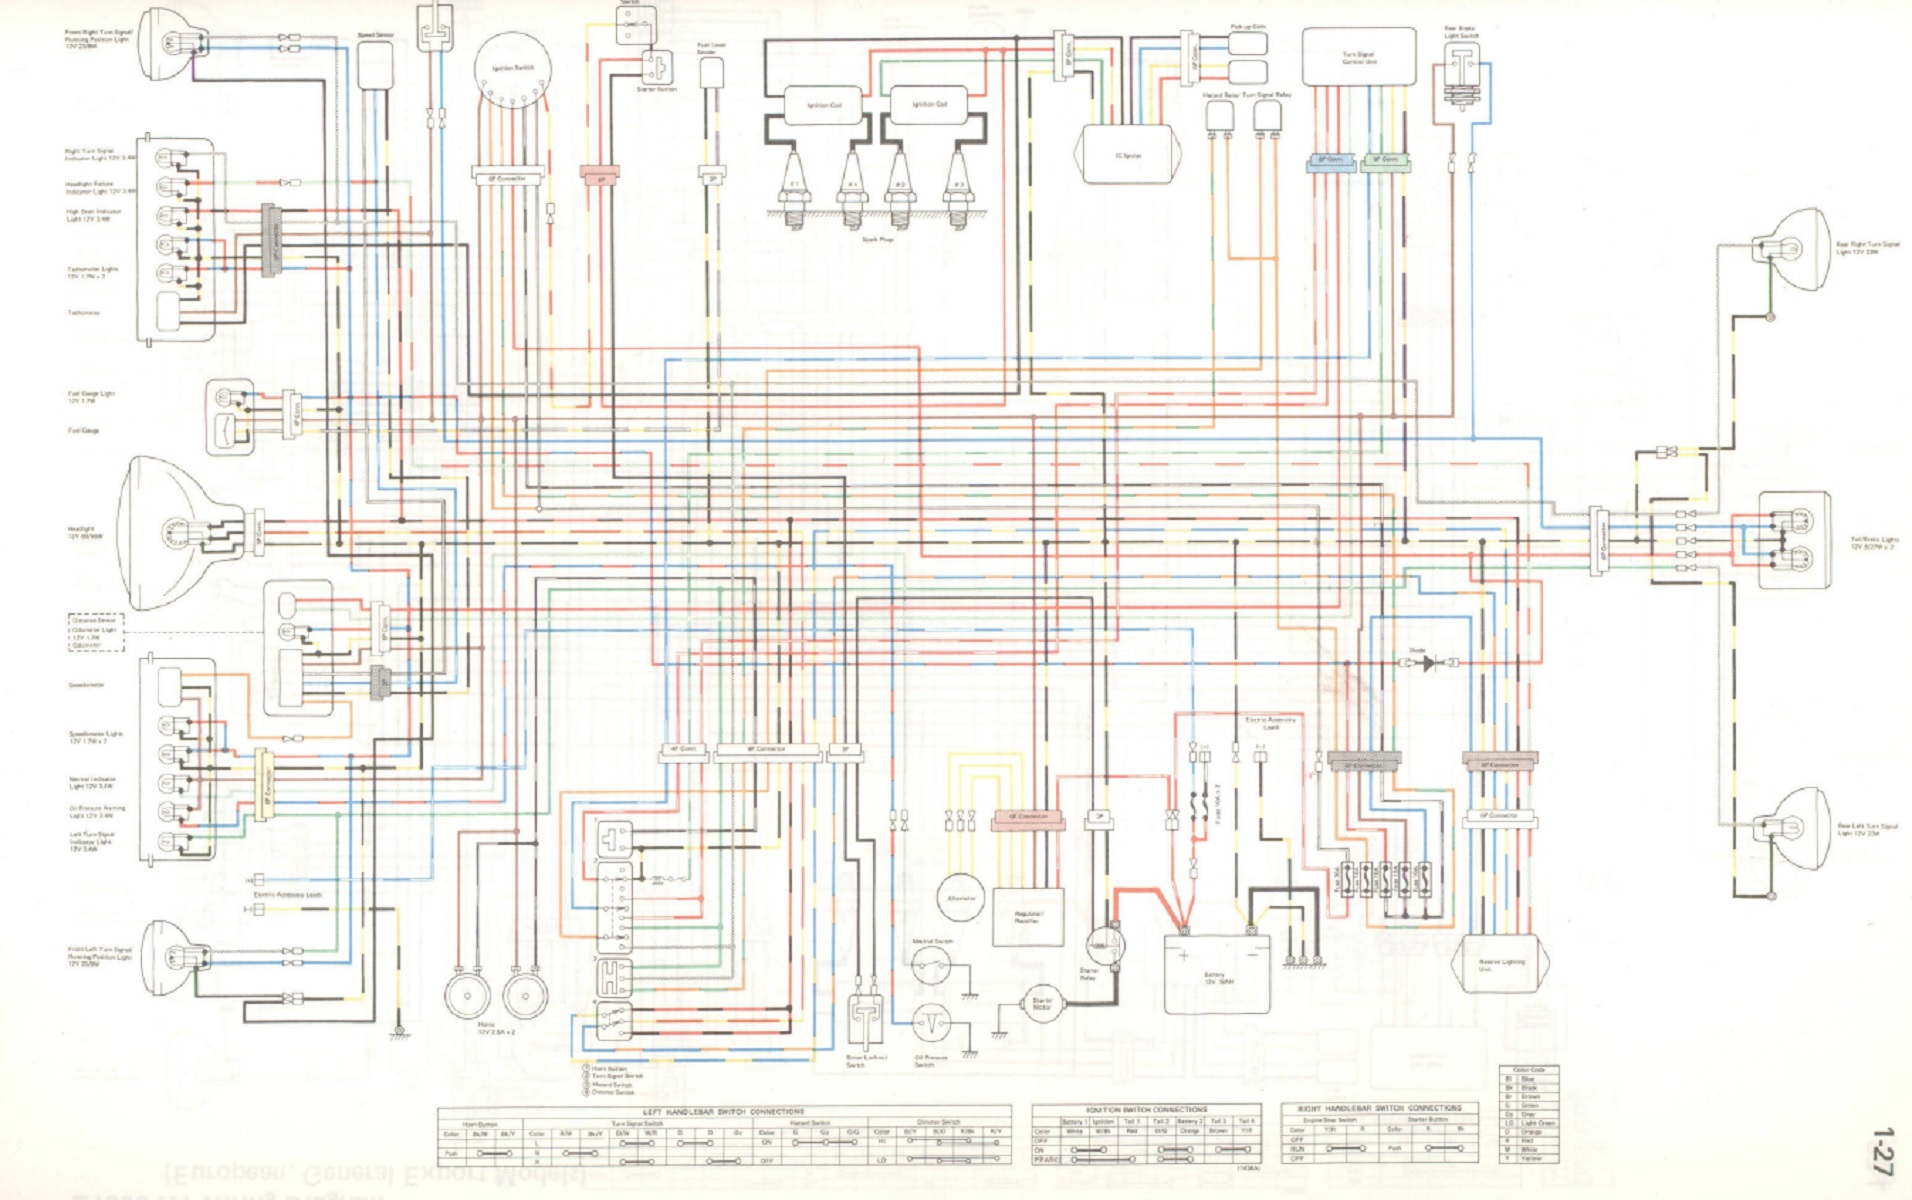 1981KZ1000 K1LTDwiringdiagram?resized665%2C4176ssld1 kawasaki bayou 250 wiring diagram efcaviation com 220 kawasaki bayou wiring diagram at crackthecode.co